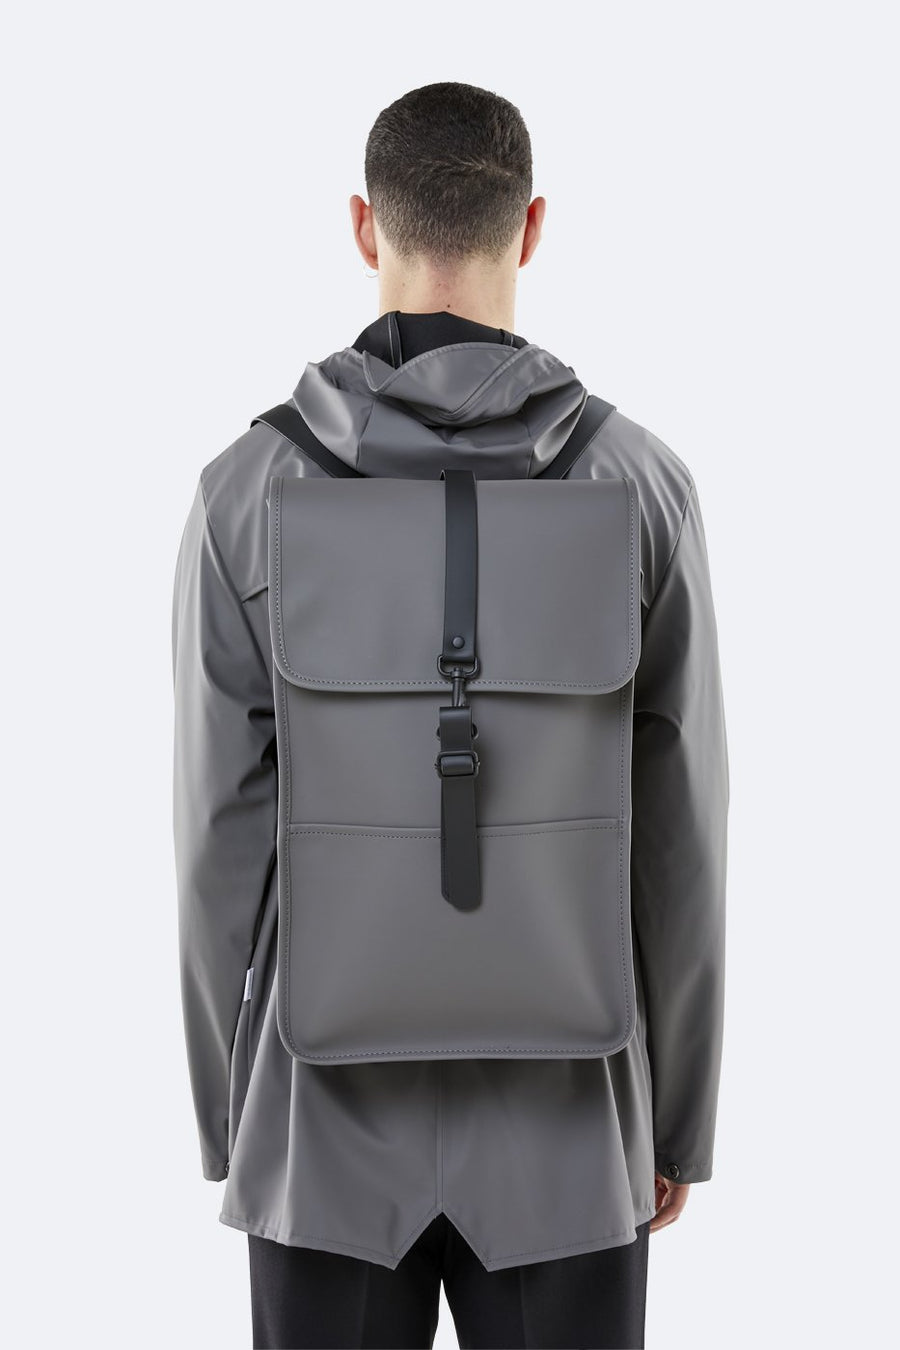 Rains Backpack - Charcoal